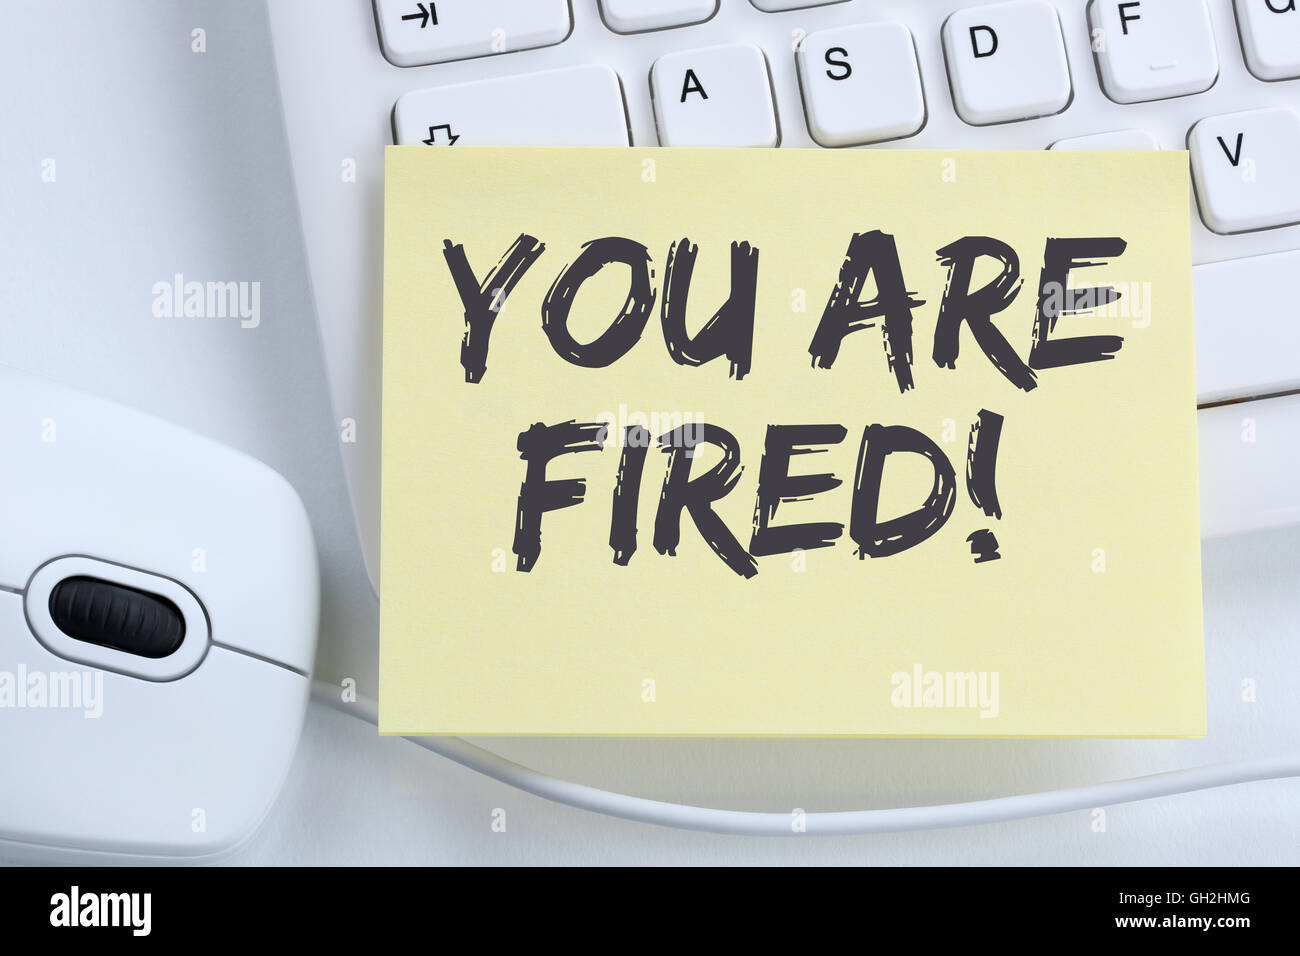 You are fired employee losing jobs, job working unemployed business concept office computer keyboard - Stock Image